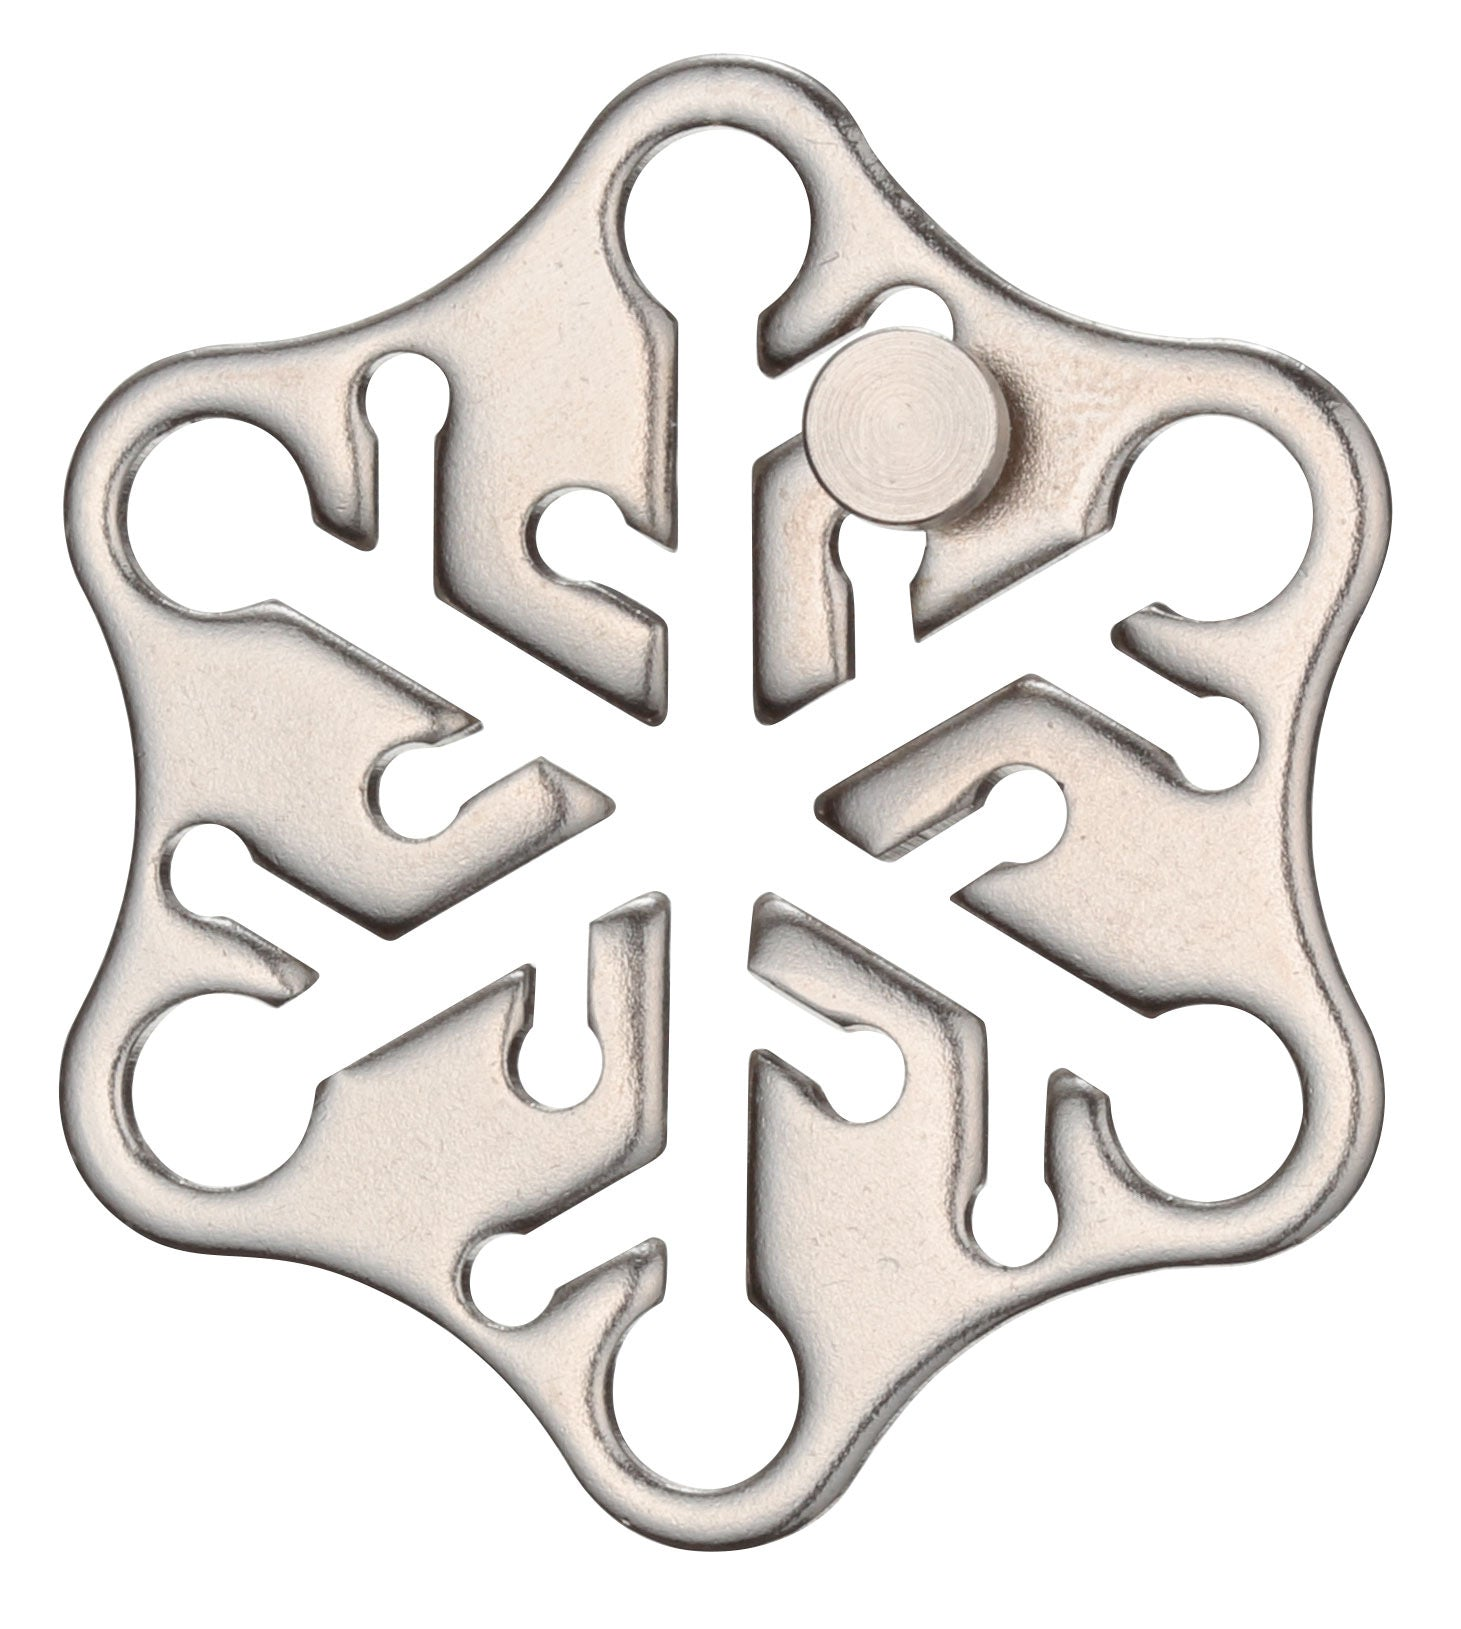 Snow - Hanayama Puzzle Level 2